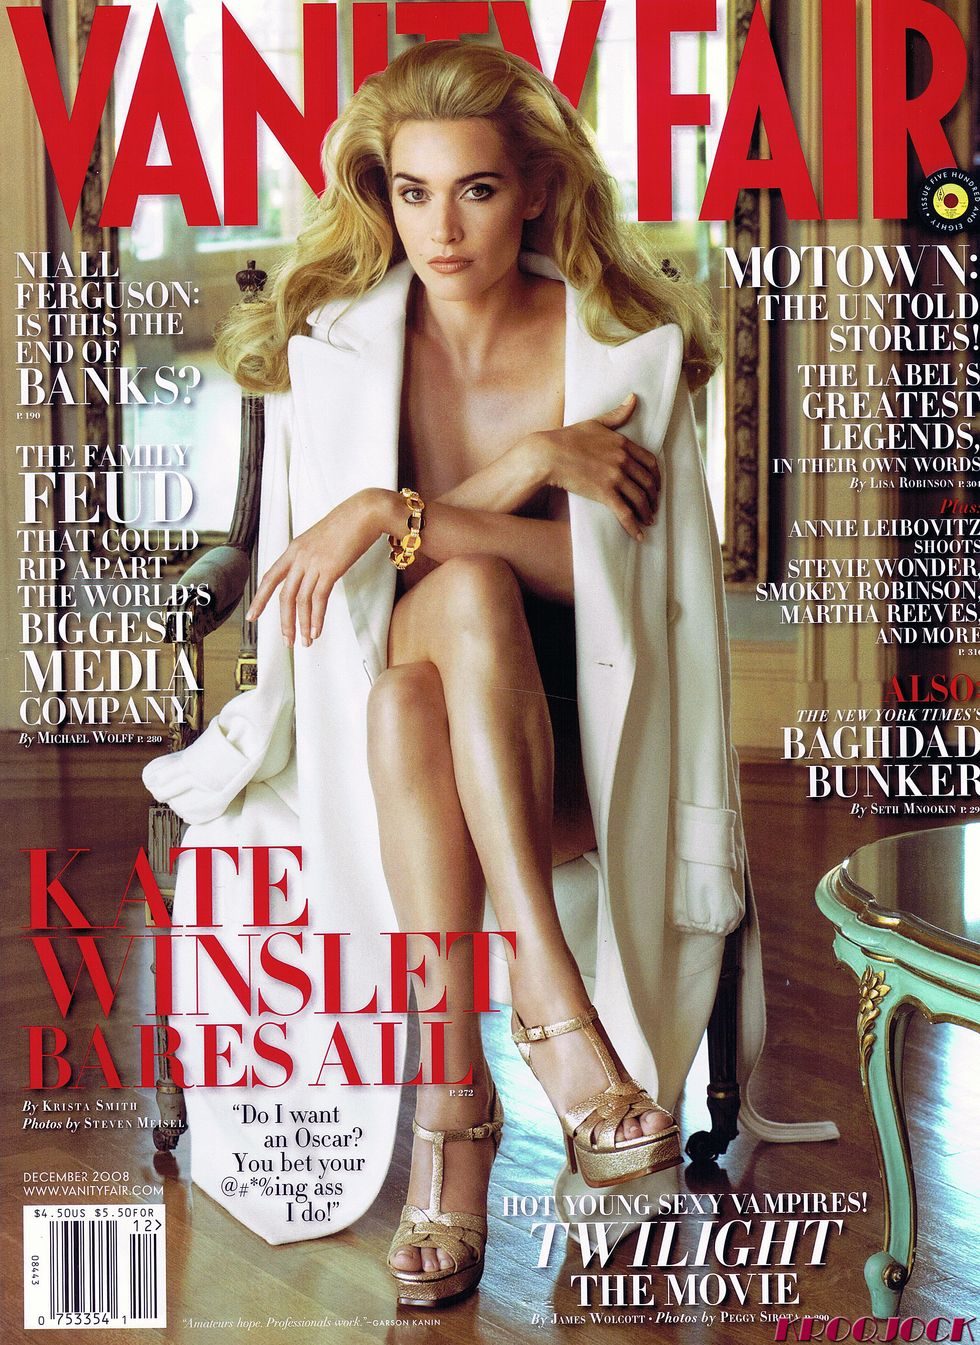 kate-winslet-vanity-fair-magazine-december-2008-02